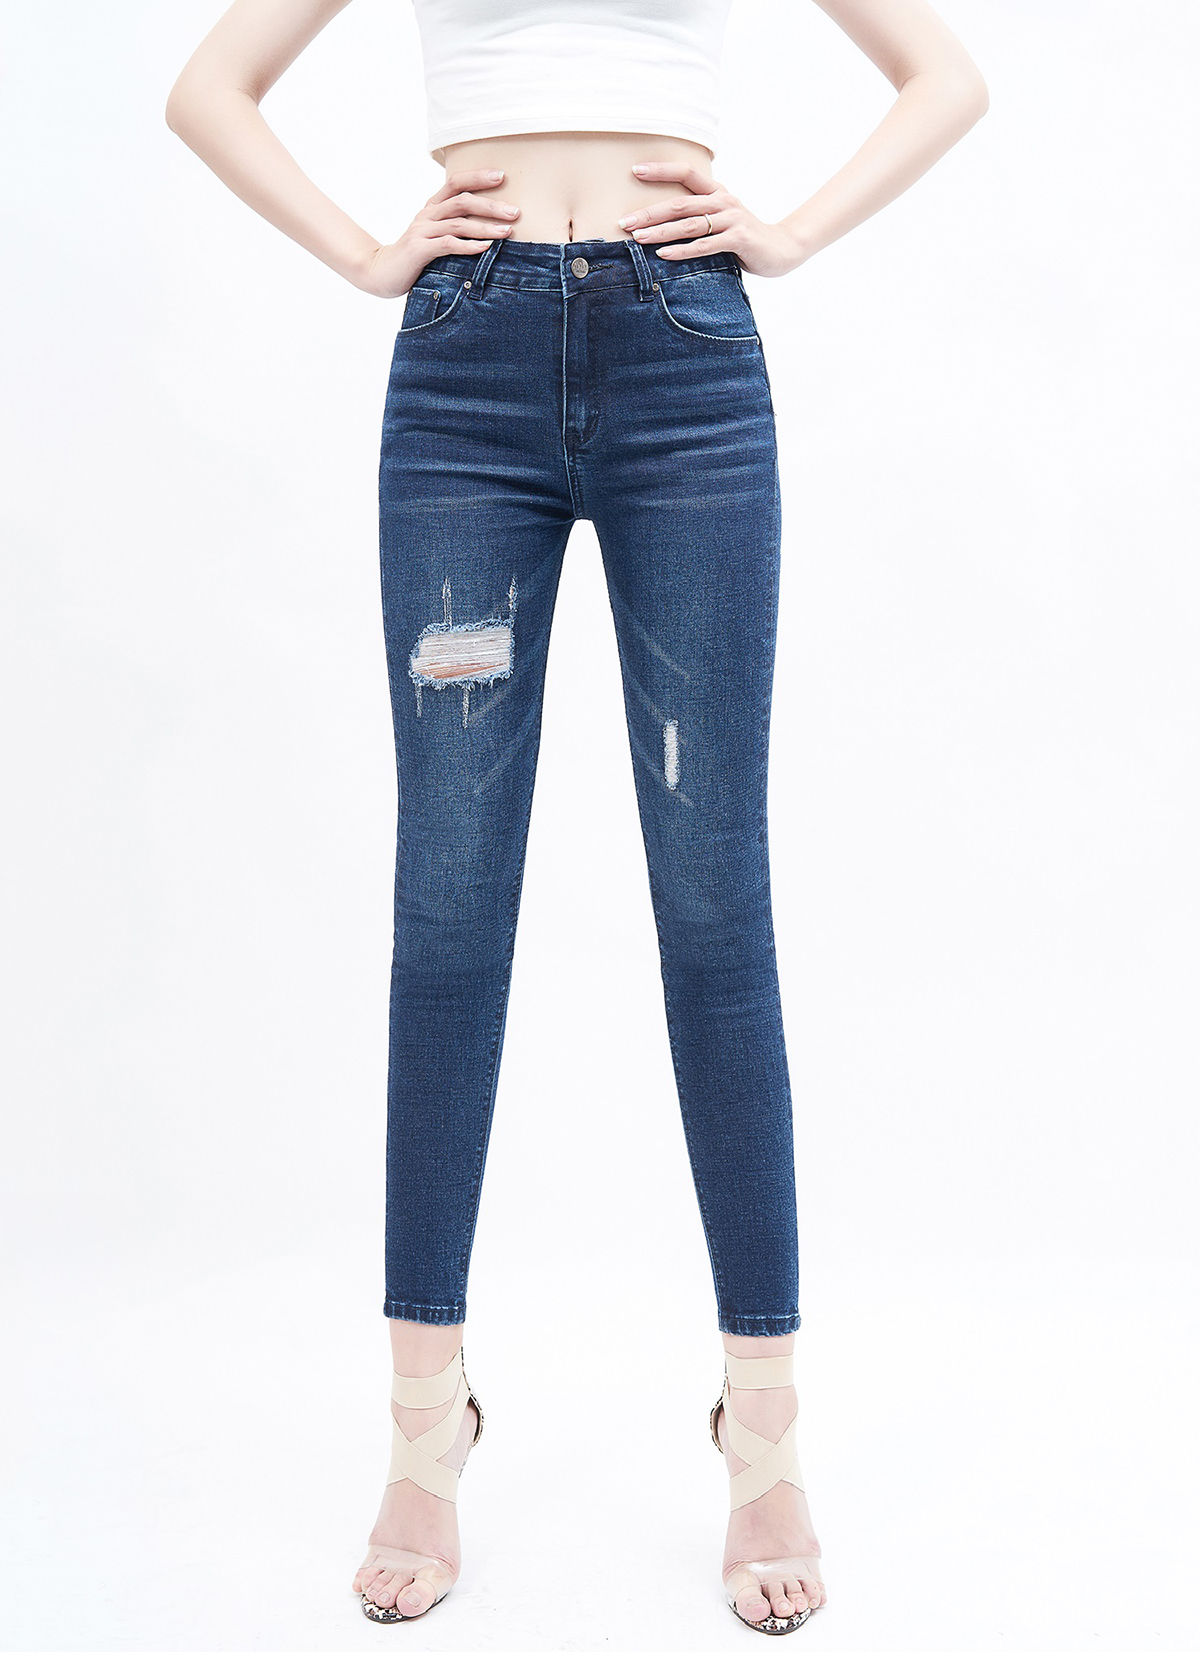 Quần jean nữ AAA JEANS skinny lưng cao rách xanh đậm - 15875397 , 5893327465295 , 62_20114048 , 429000 , Quan-jean-nu-AAA-JEANS-skinny-lung-cao-rach-xanh-dam-62_20114048 , tiki.vn , Quần jean nữ AAA JEANS skinny lưng cao rách xanh đậm